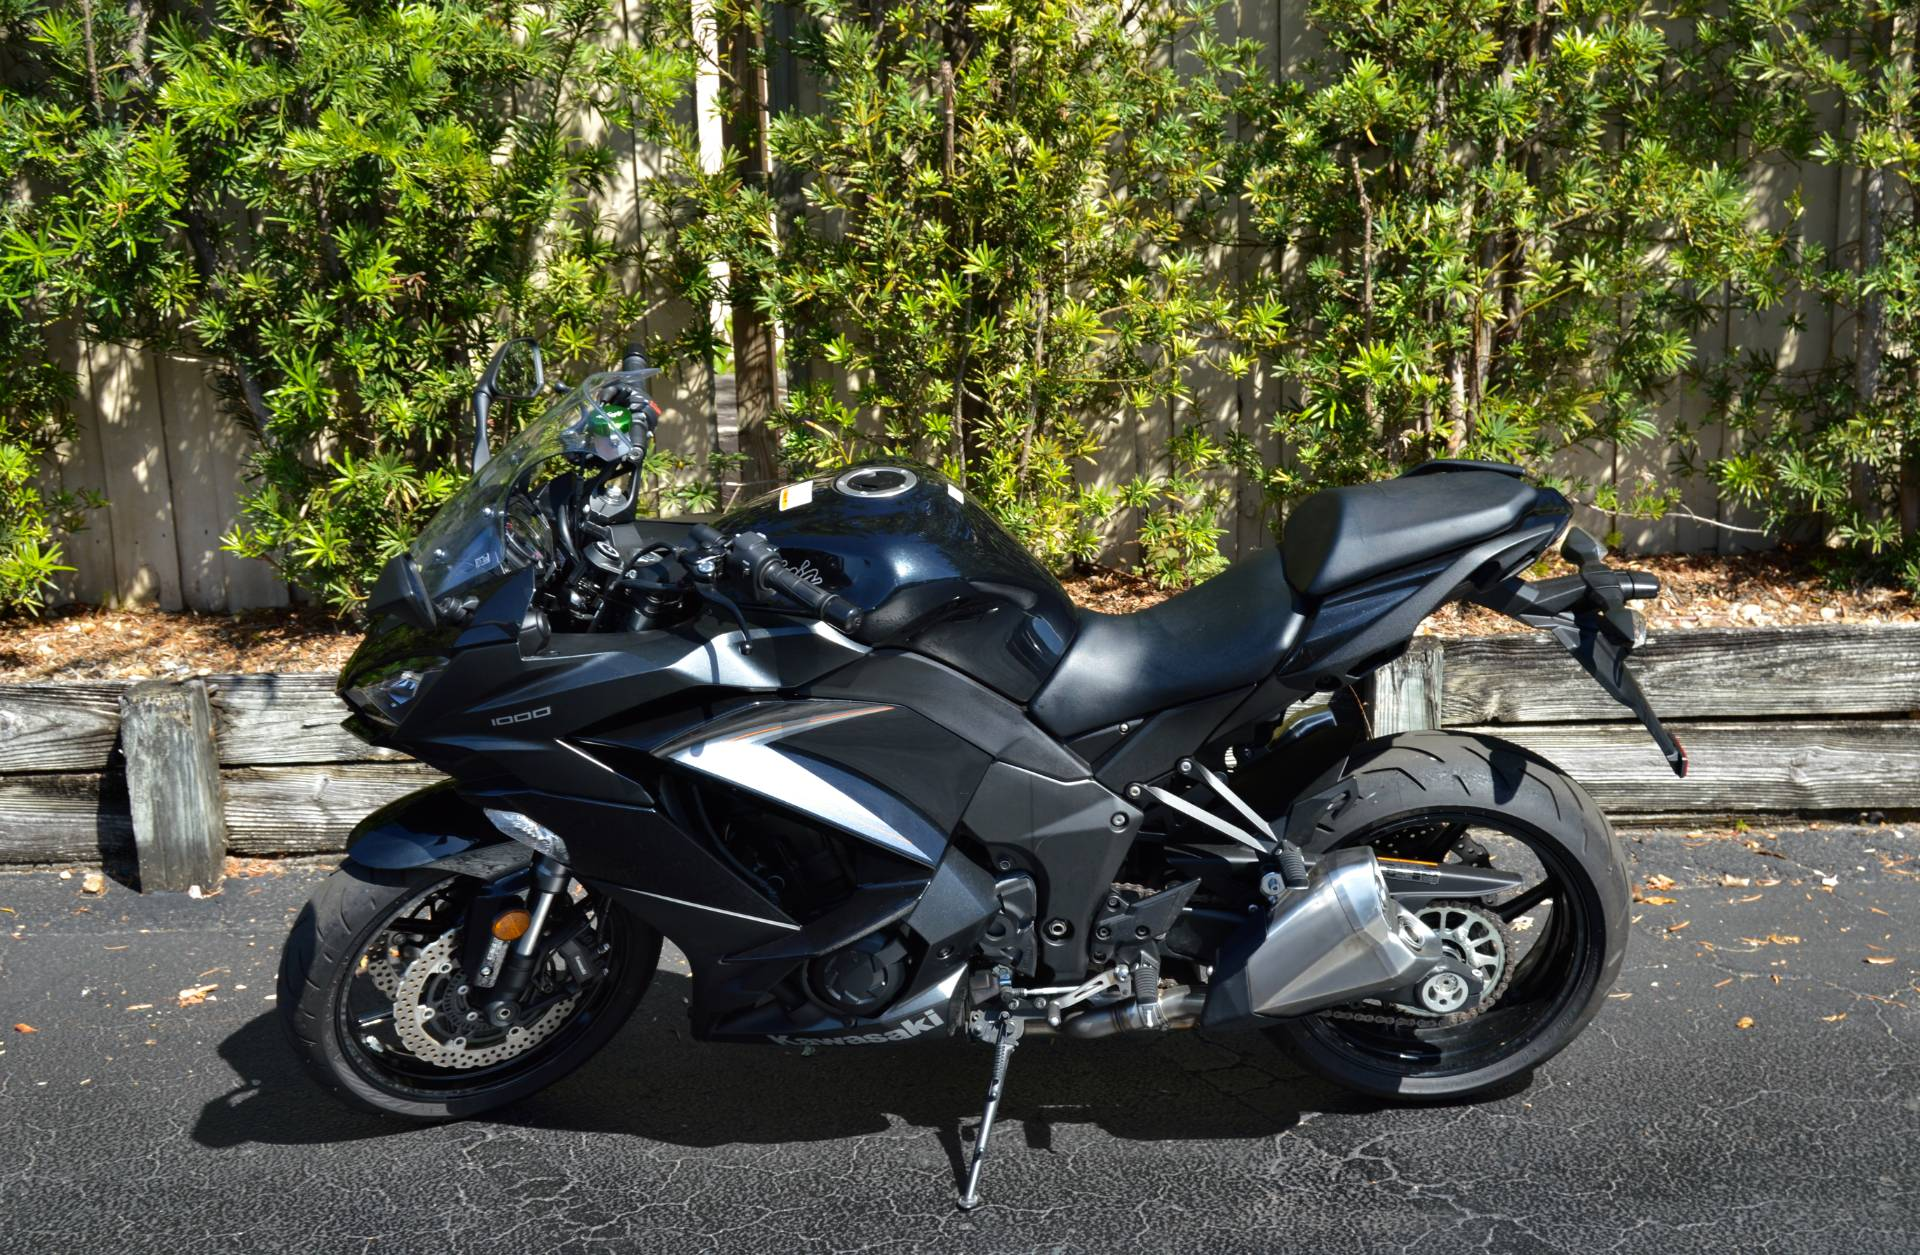 2019 Kawasaki Ninja 1000 ABS in Boca Raton, Florida - Photo 6